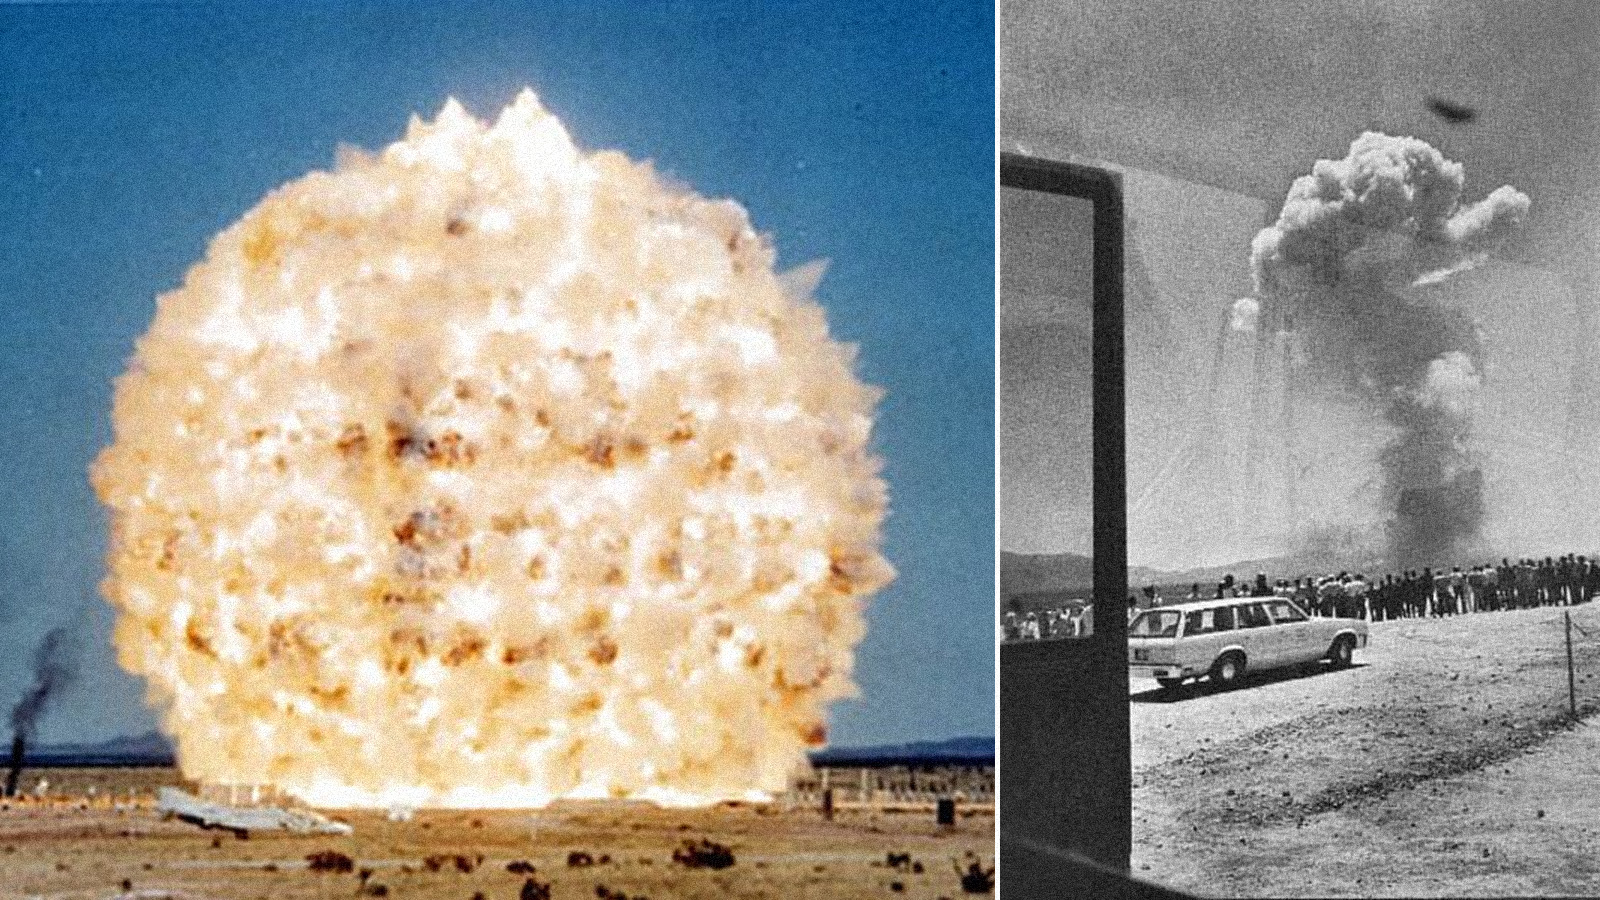 25 of the Deadliest Explosions Man Ever Made | schaparala